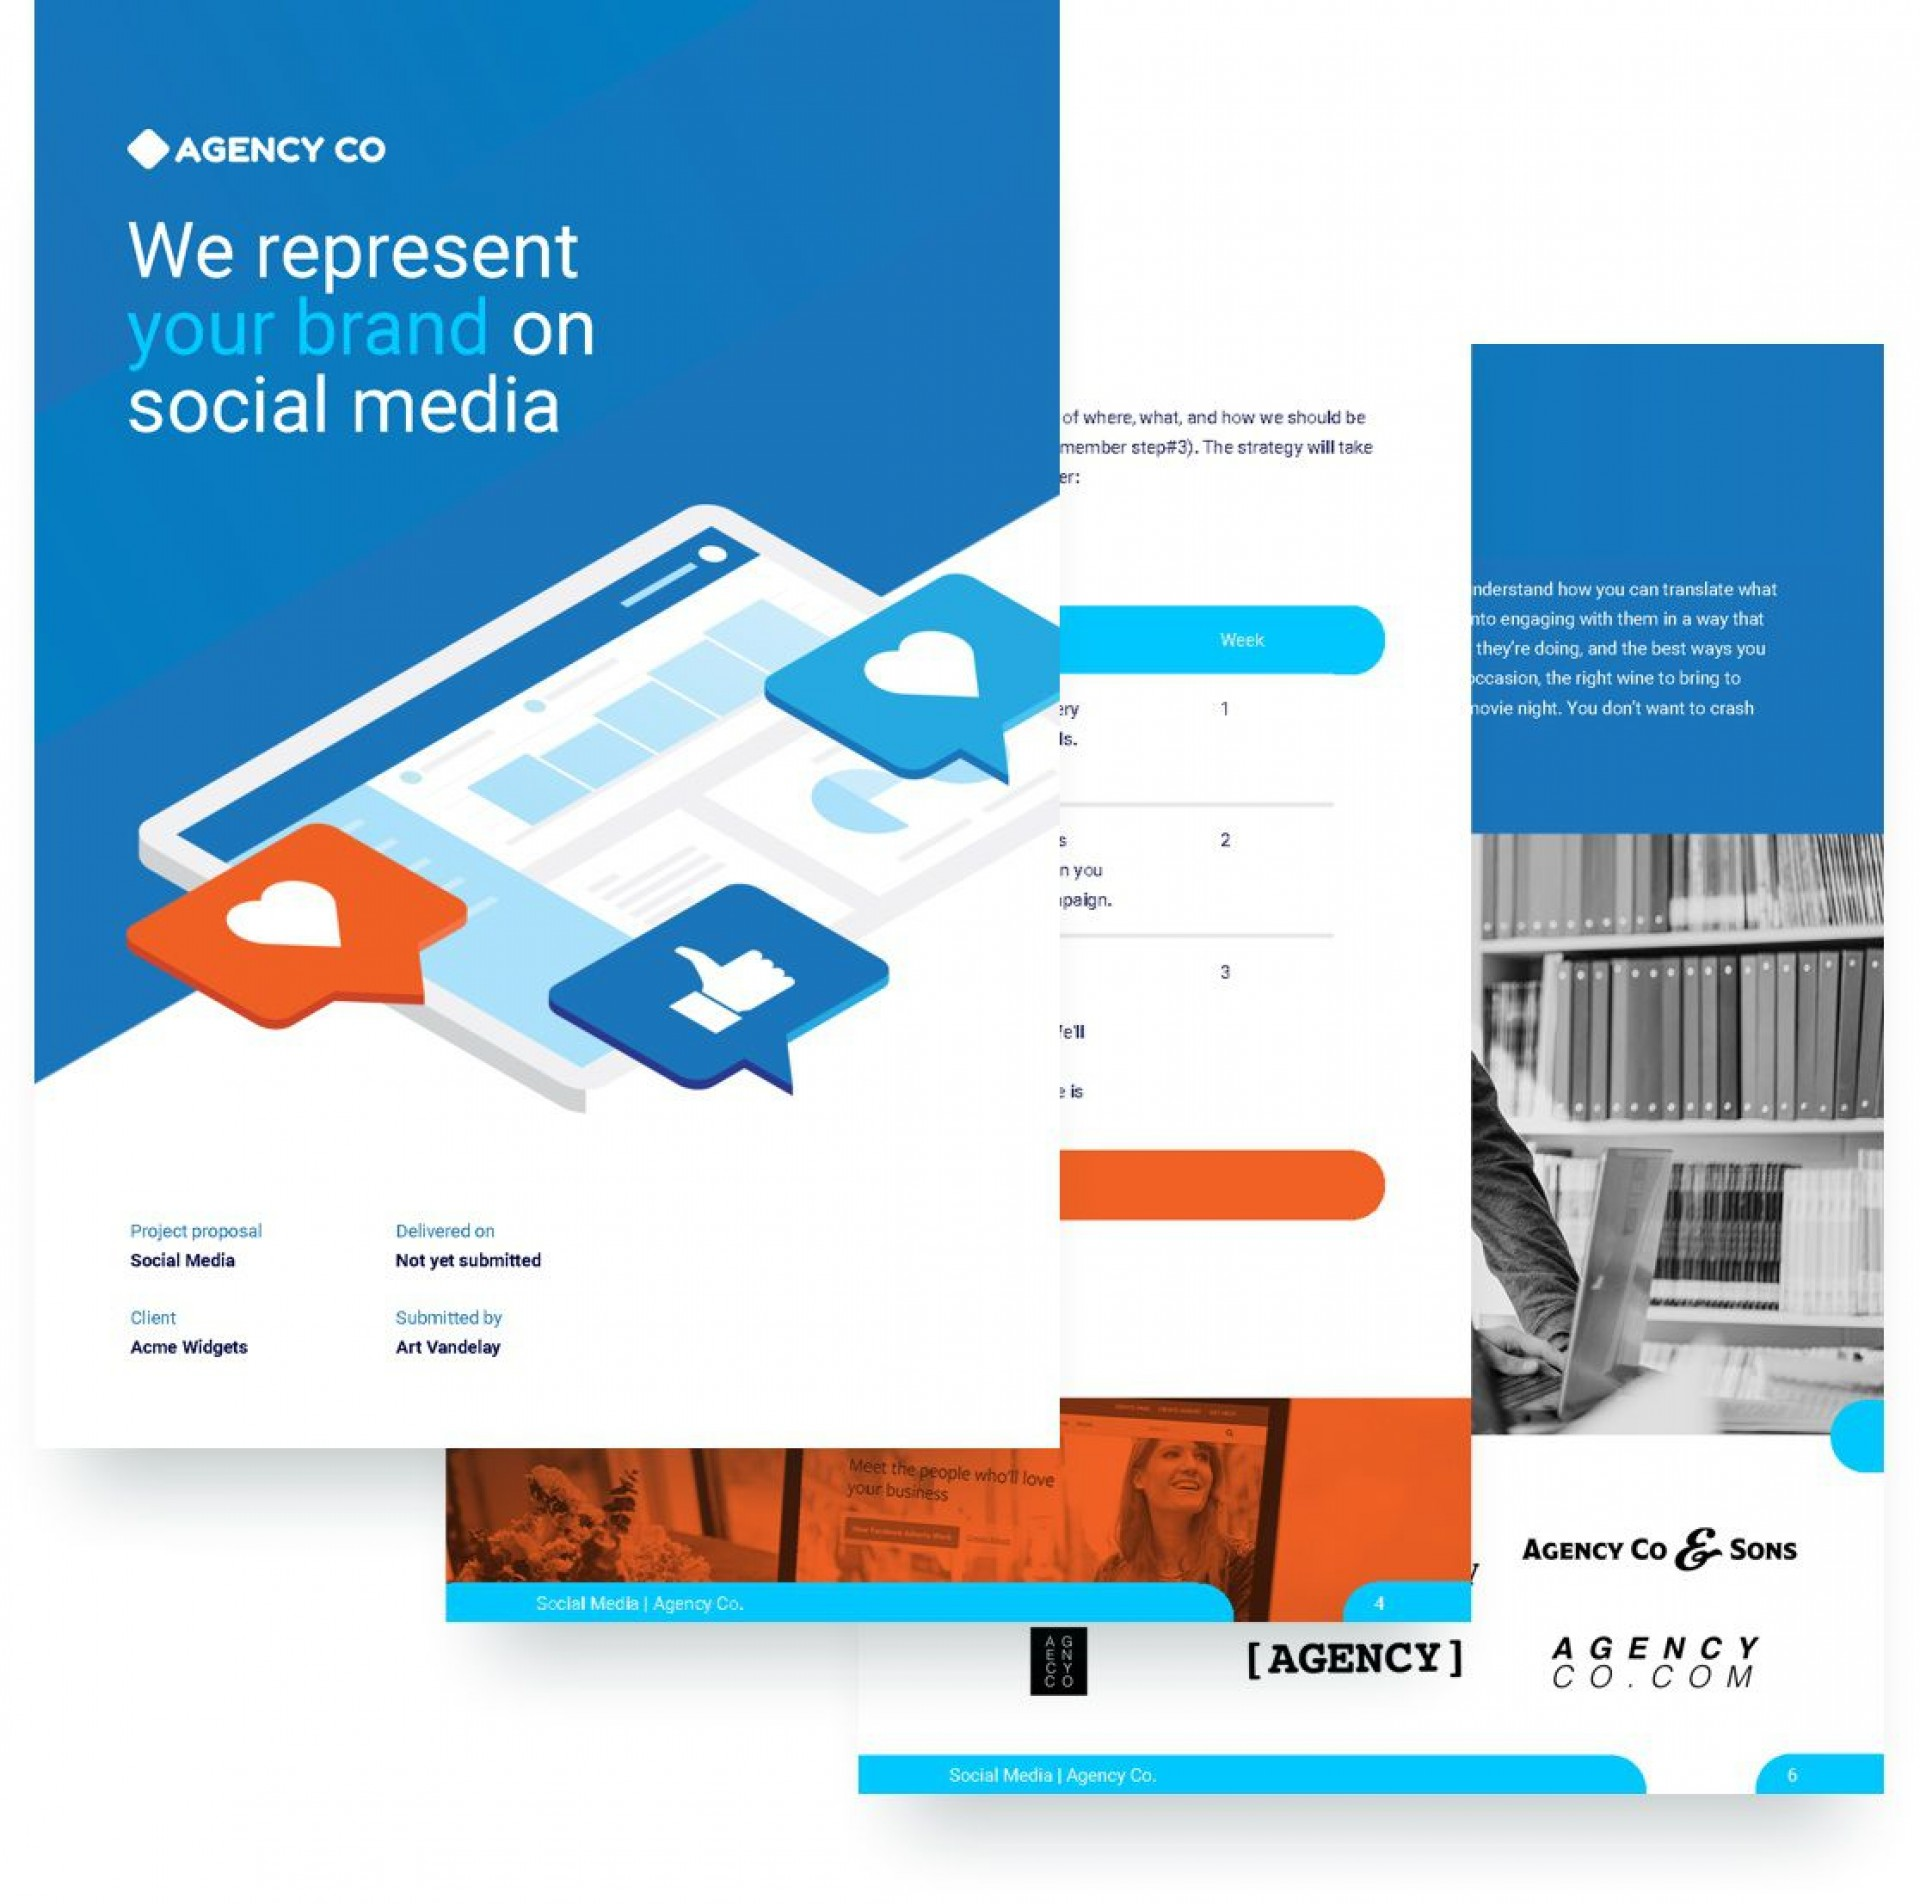 008 Fearsome Social Media Proposal Template High Definition  Plan Sample Pdf 20181920